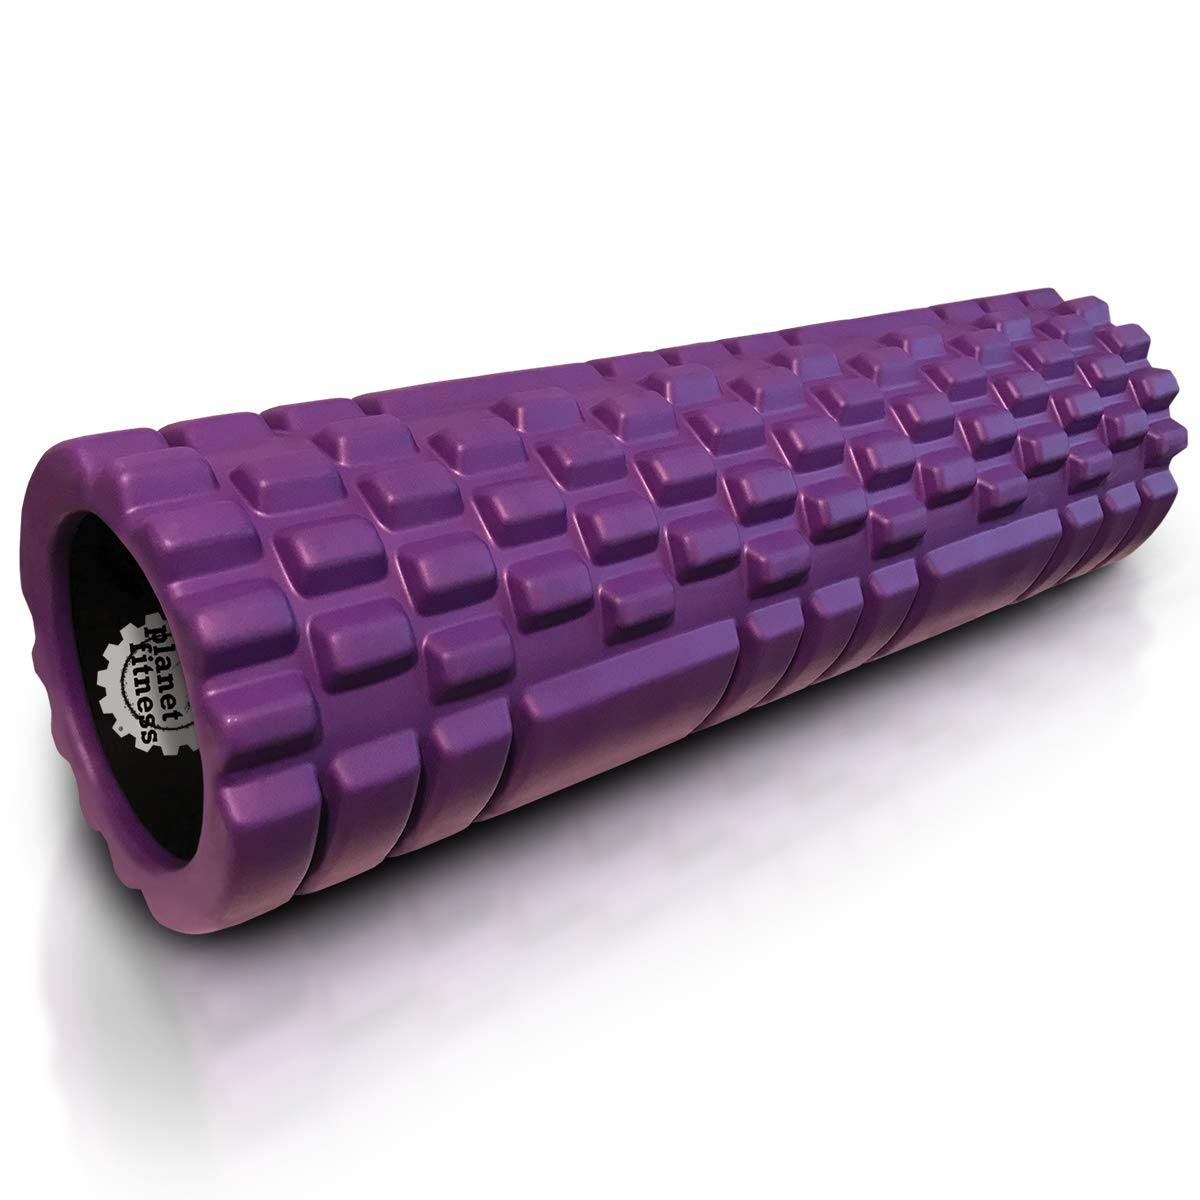 Planet Fitness Muscle Massager Foam Roller for Deep Tissue Massage, Back, Trigger Point Therapy, Purple 18''